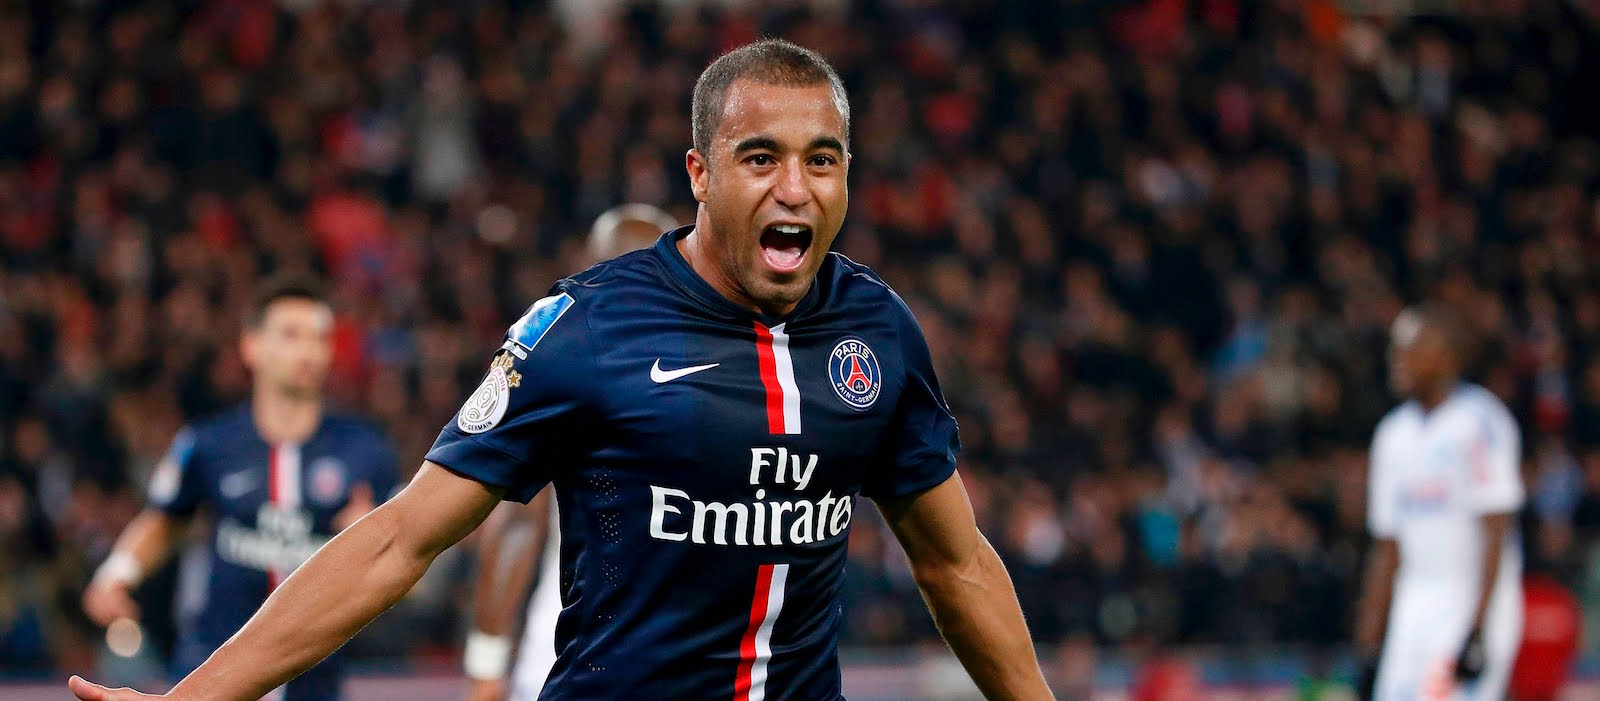 Tony Gale: Lucas Moura has what Manchester United needs, would be good signing